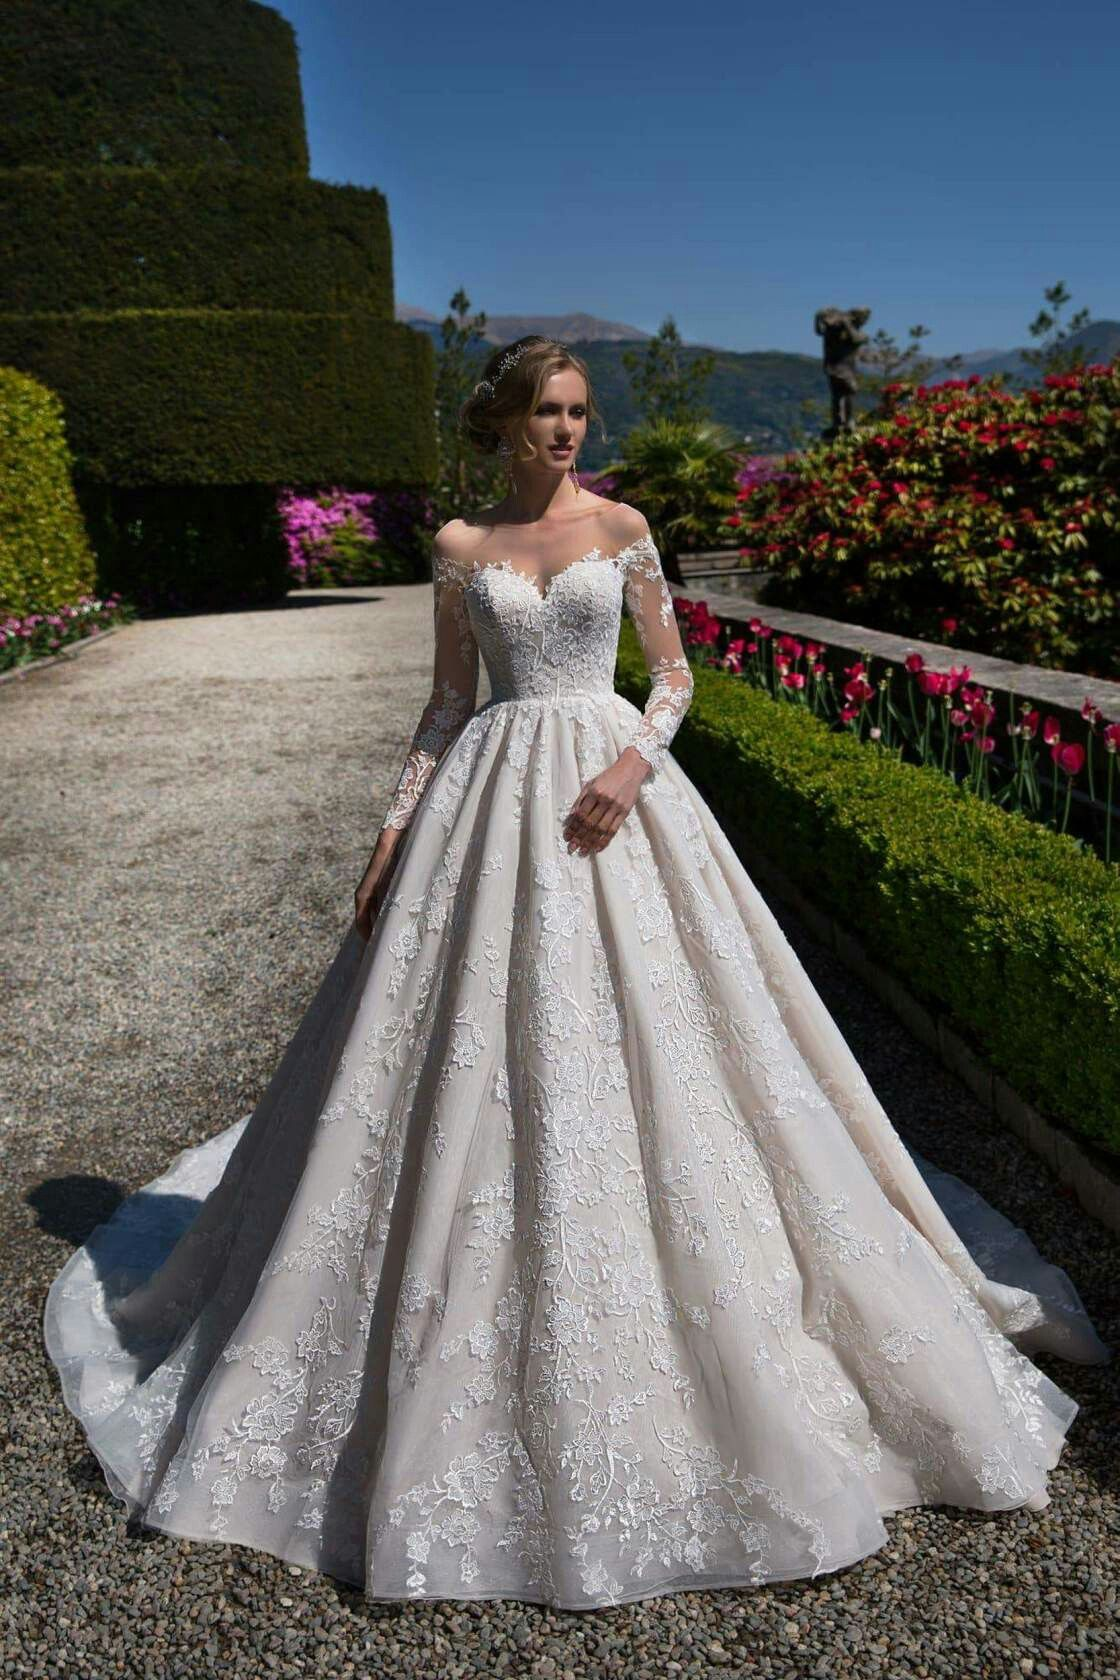 Best wedding dresses aliexpress  Pin by Pebz Stocktonzimmerman on wedding pictures to die for